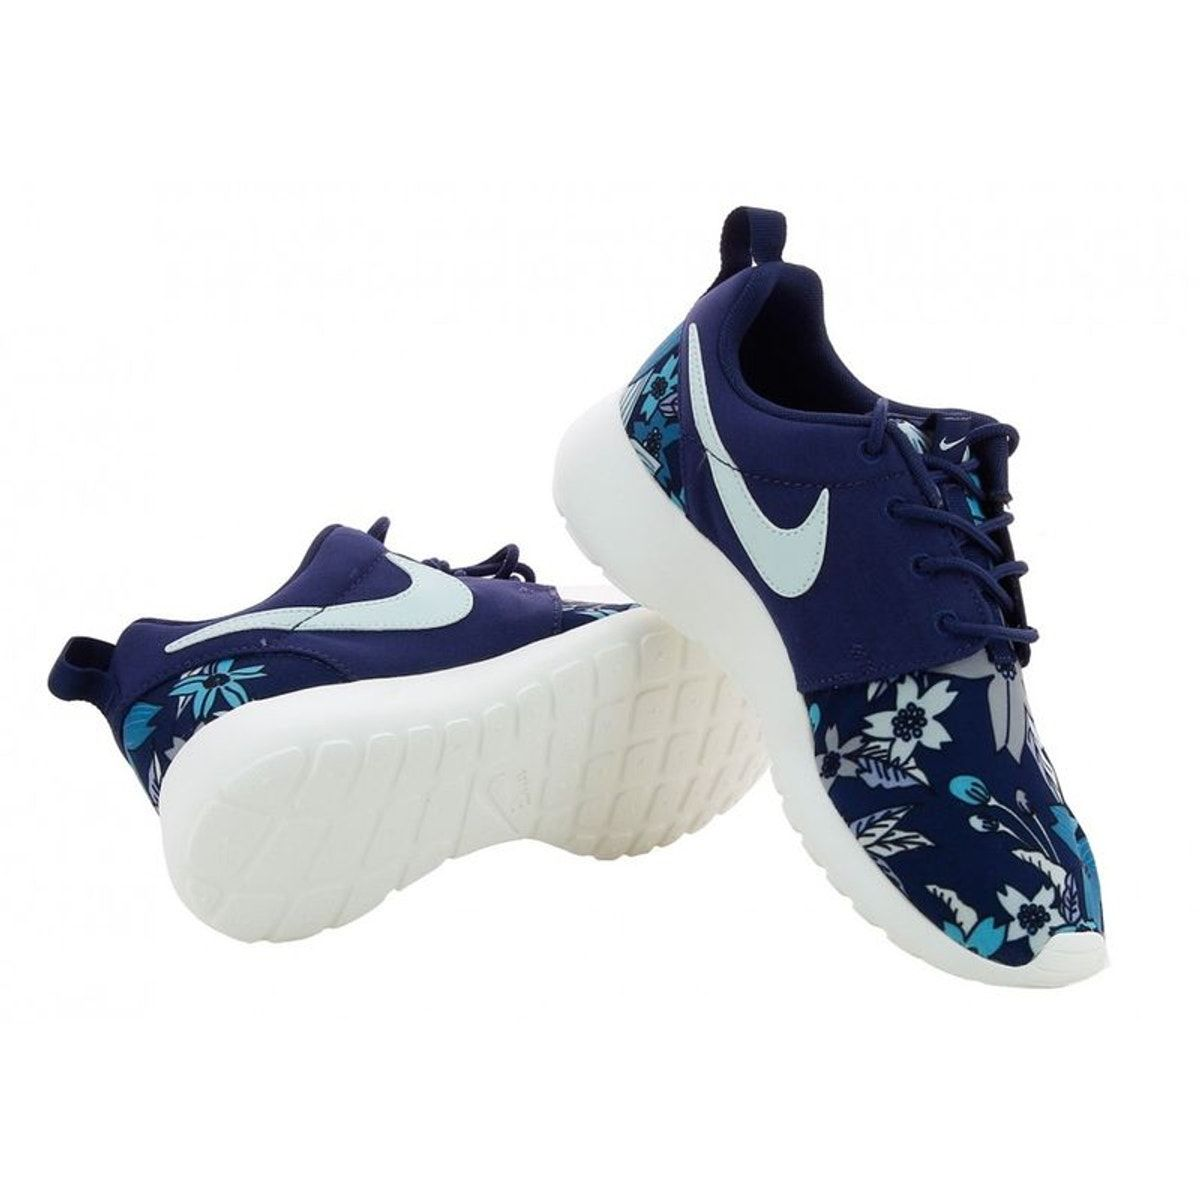 Basket Nike Roshe One Print Premium - 749986-431 | Products ...